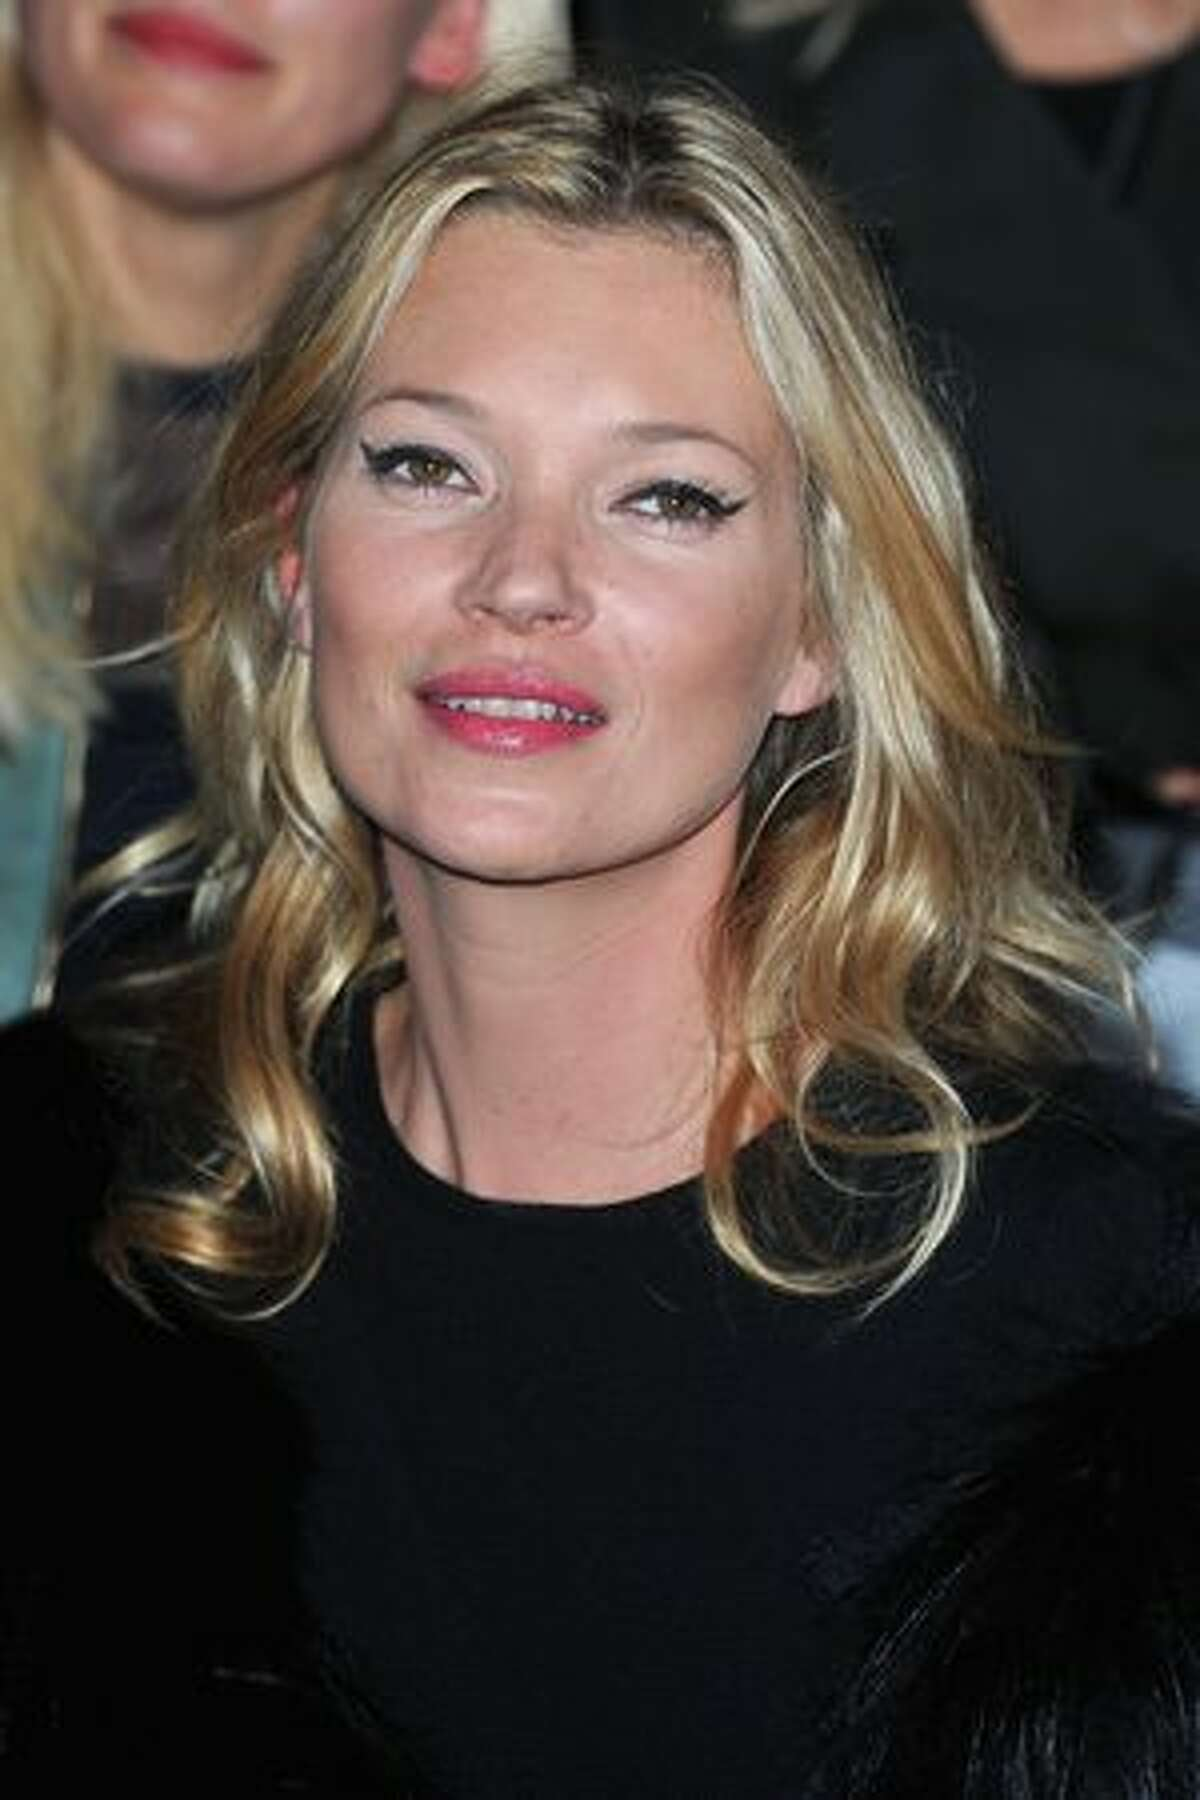 Kate Moss attends the Christian Dior Ready to Wear Spring/Summer 2011 show during Paris Fashion Week in Paris, France.